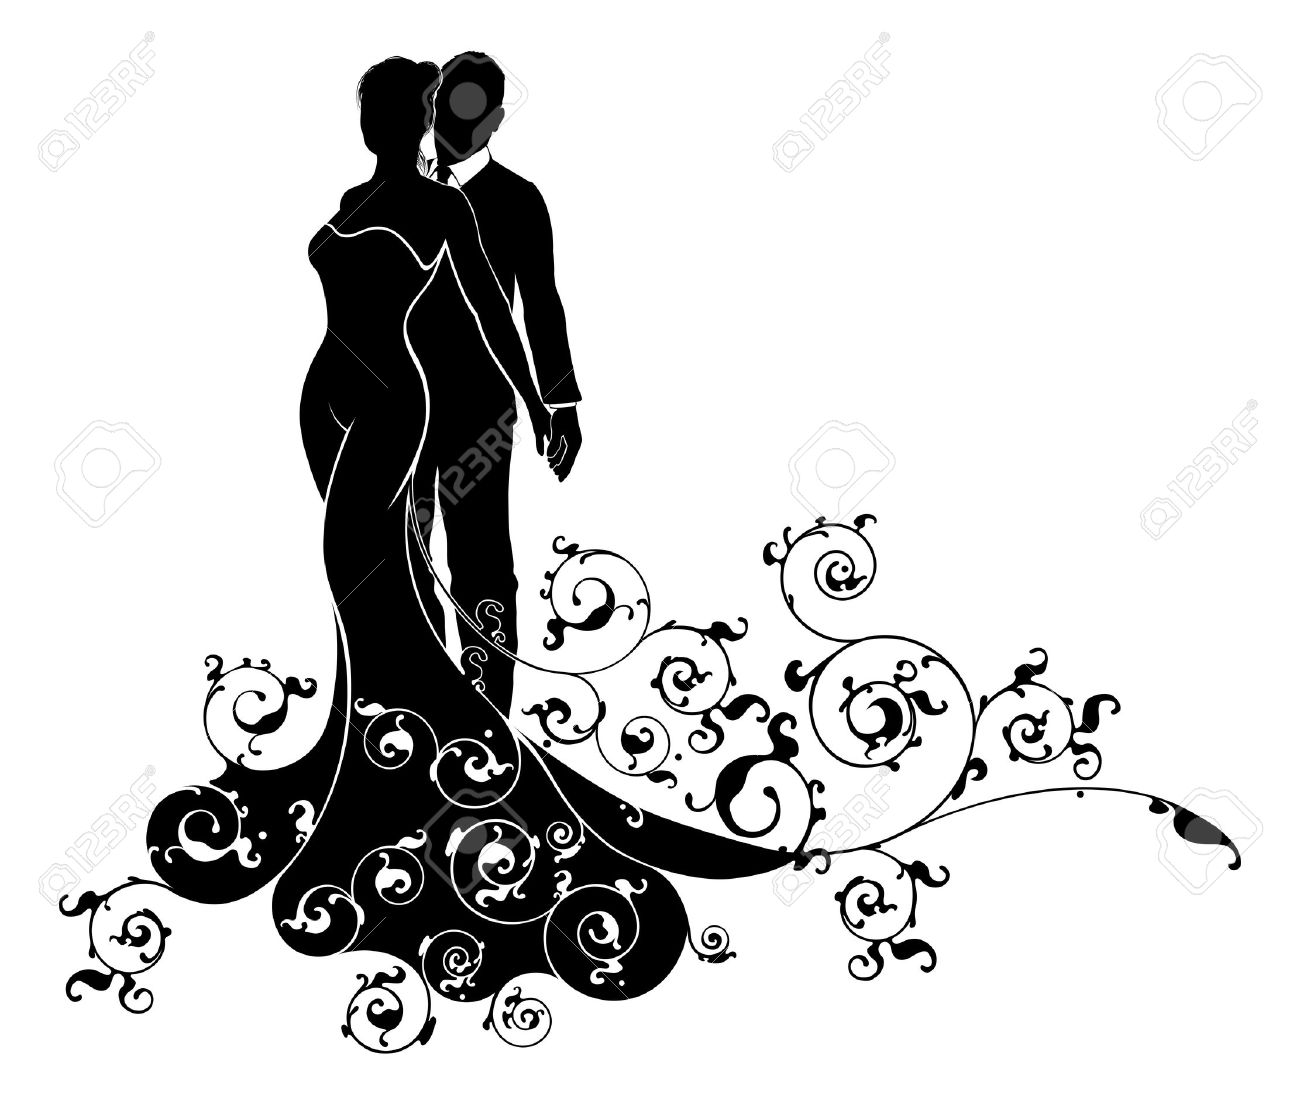 1300x1104 Bride And Groom Silhouette Clipart Black And White 11 Clipart